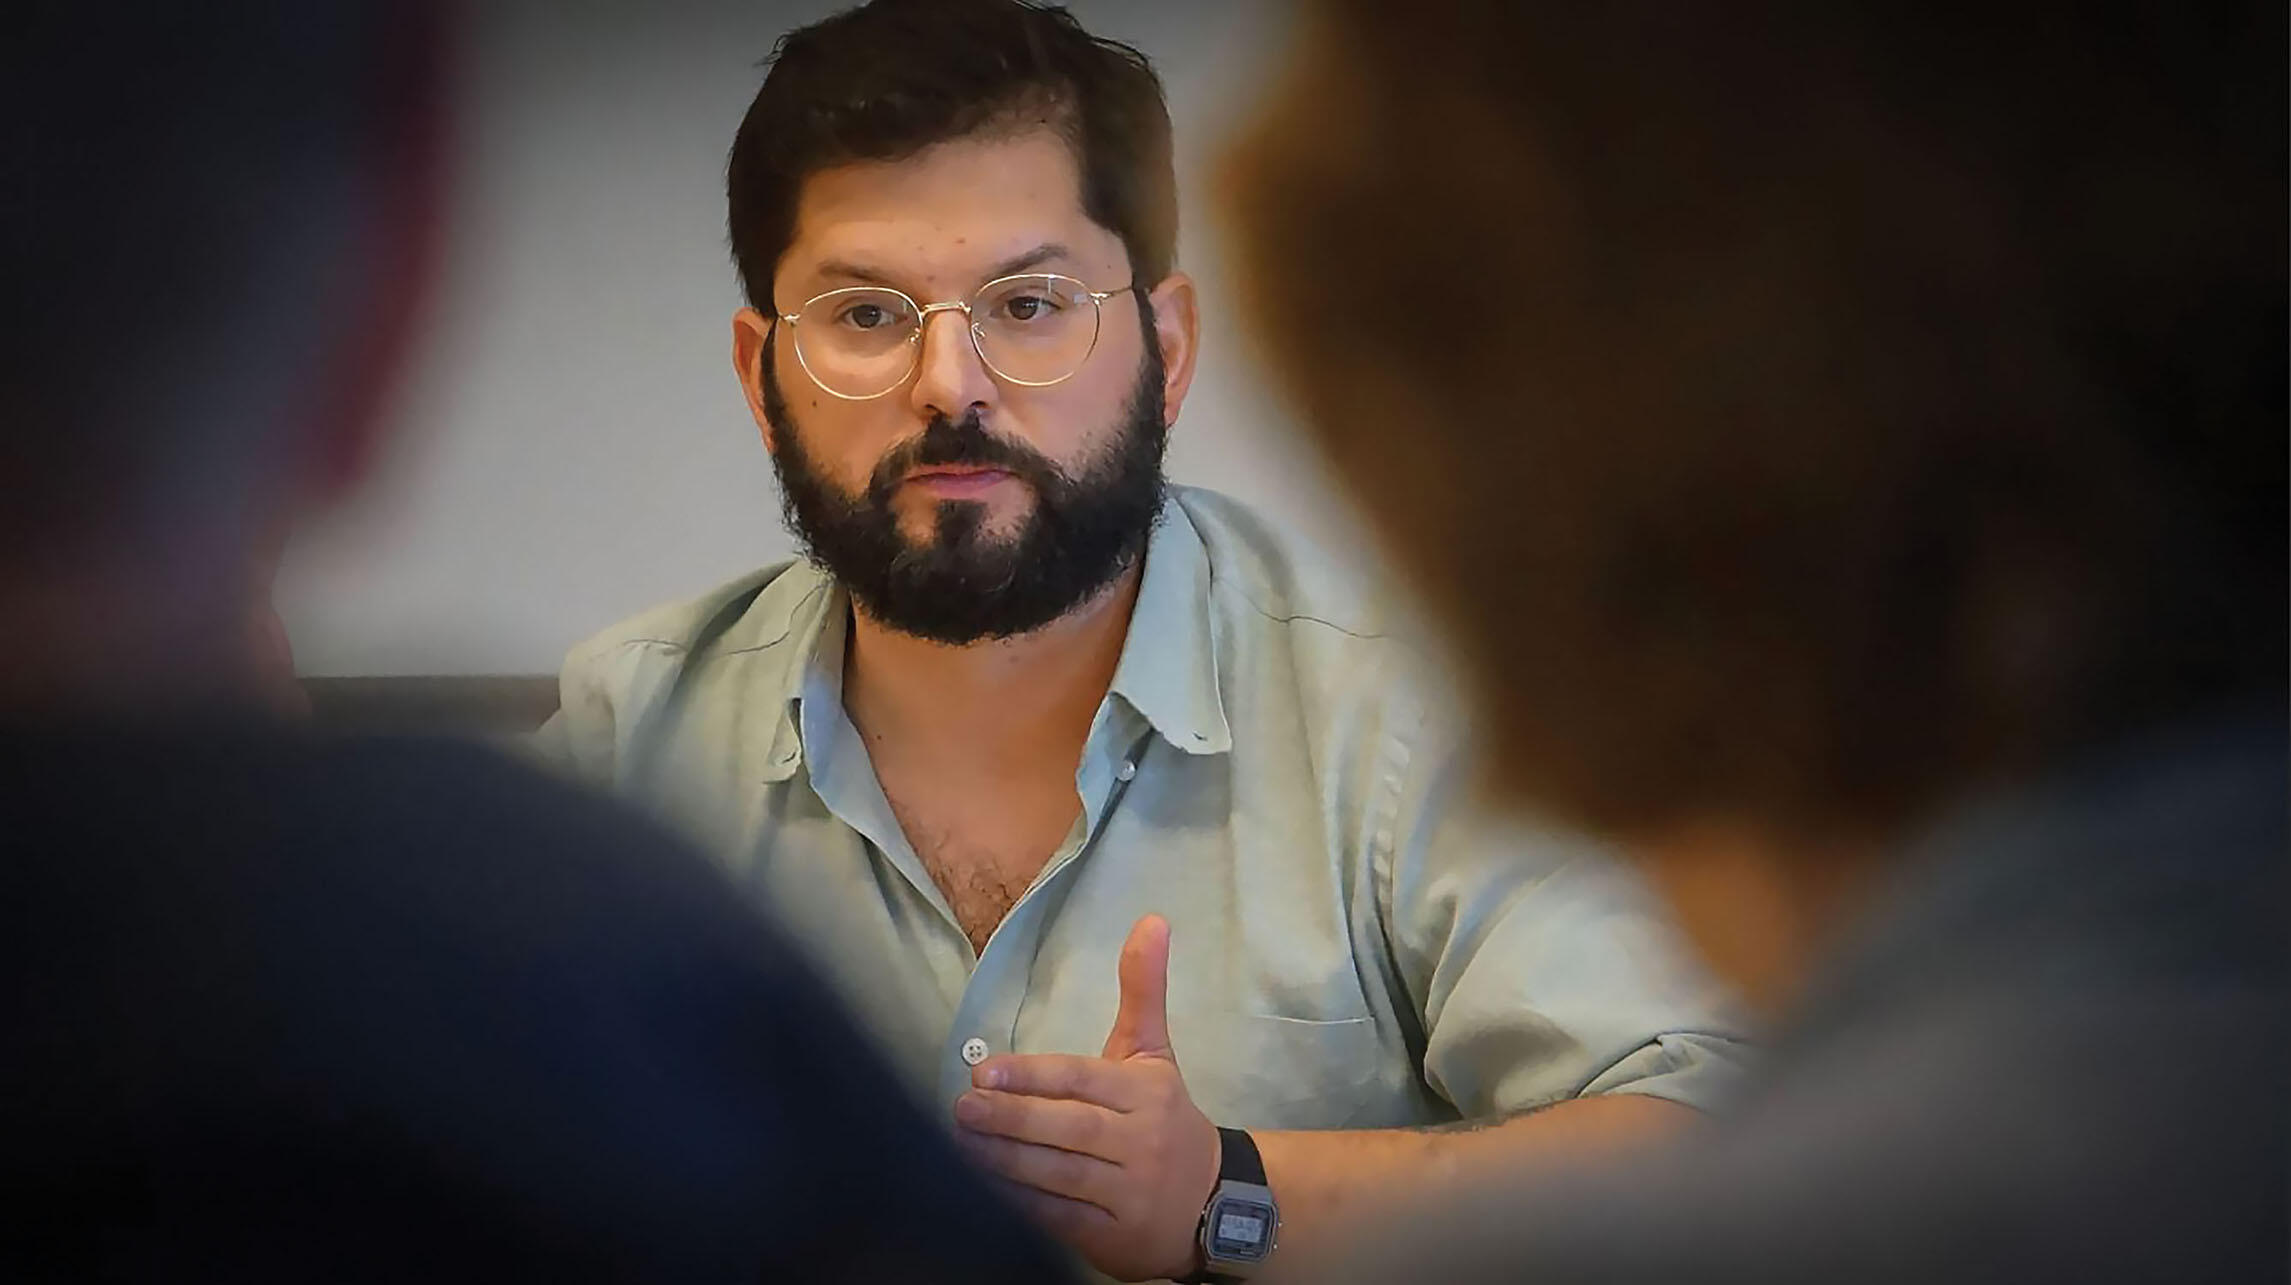 At UC Berkeley, Gabriel Boric explains the drive to re-write Chile's Constitution in 2020. (Photo by Nico Novoa-Marchant - www.sdpaudiovisual.com.)